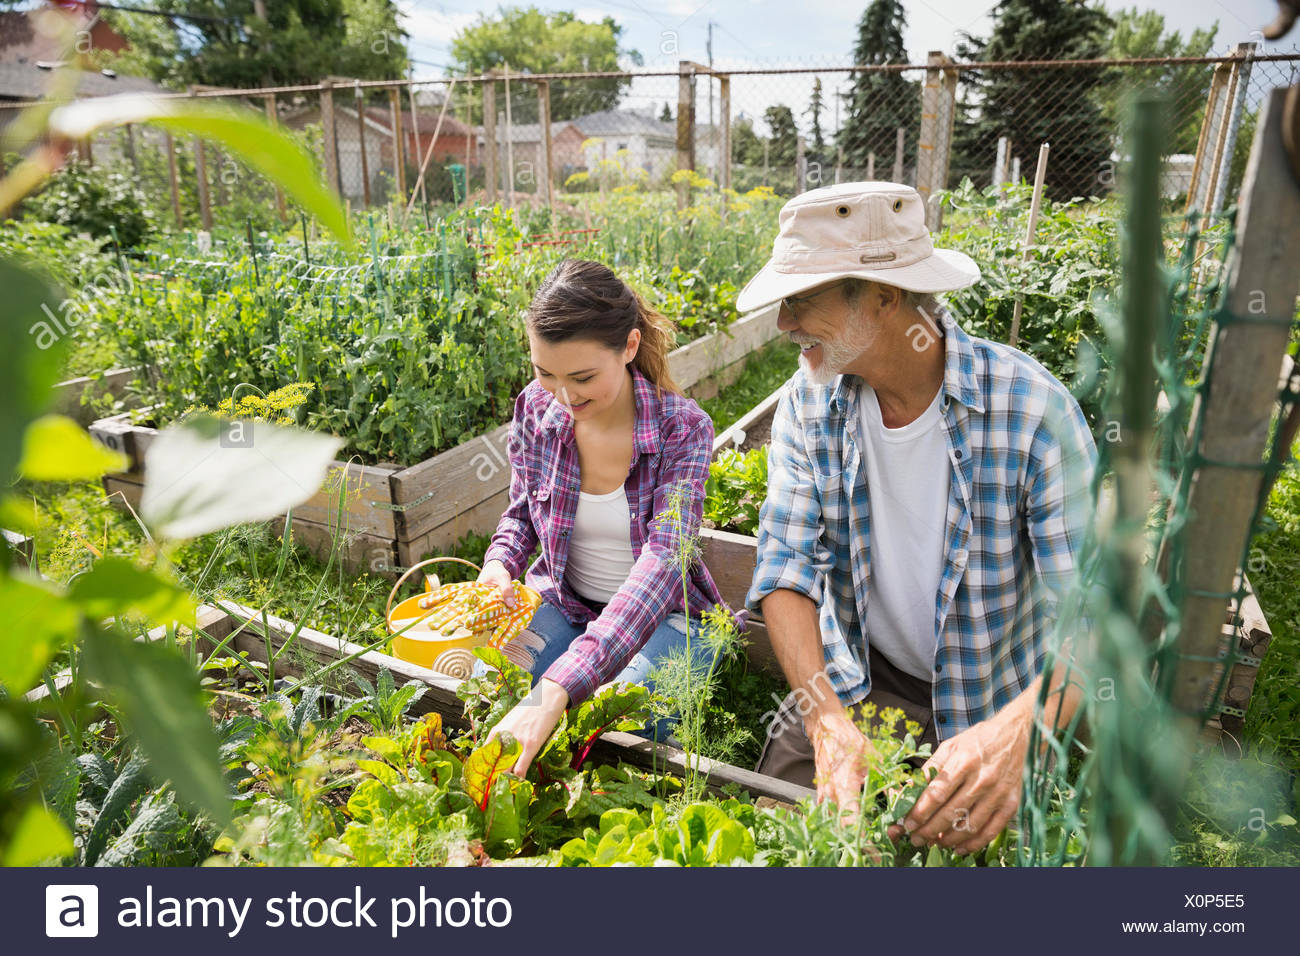 Father and daughter tending to vegetable garden - Stock Image